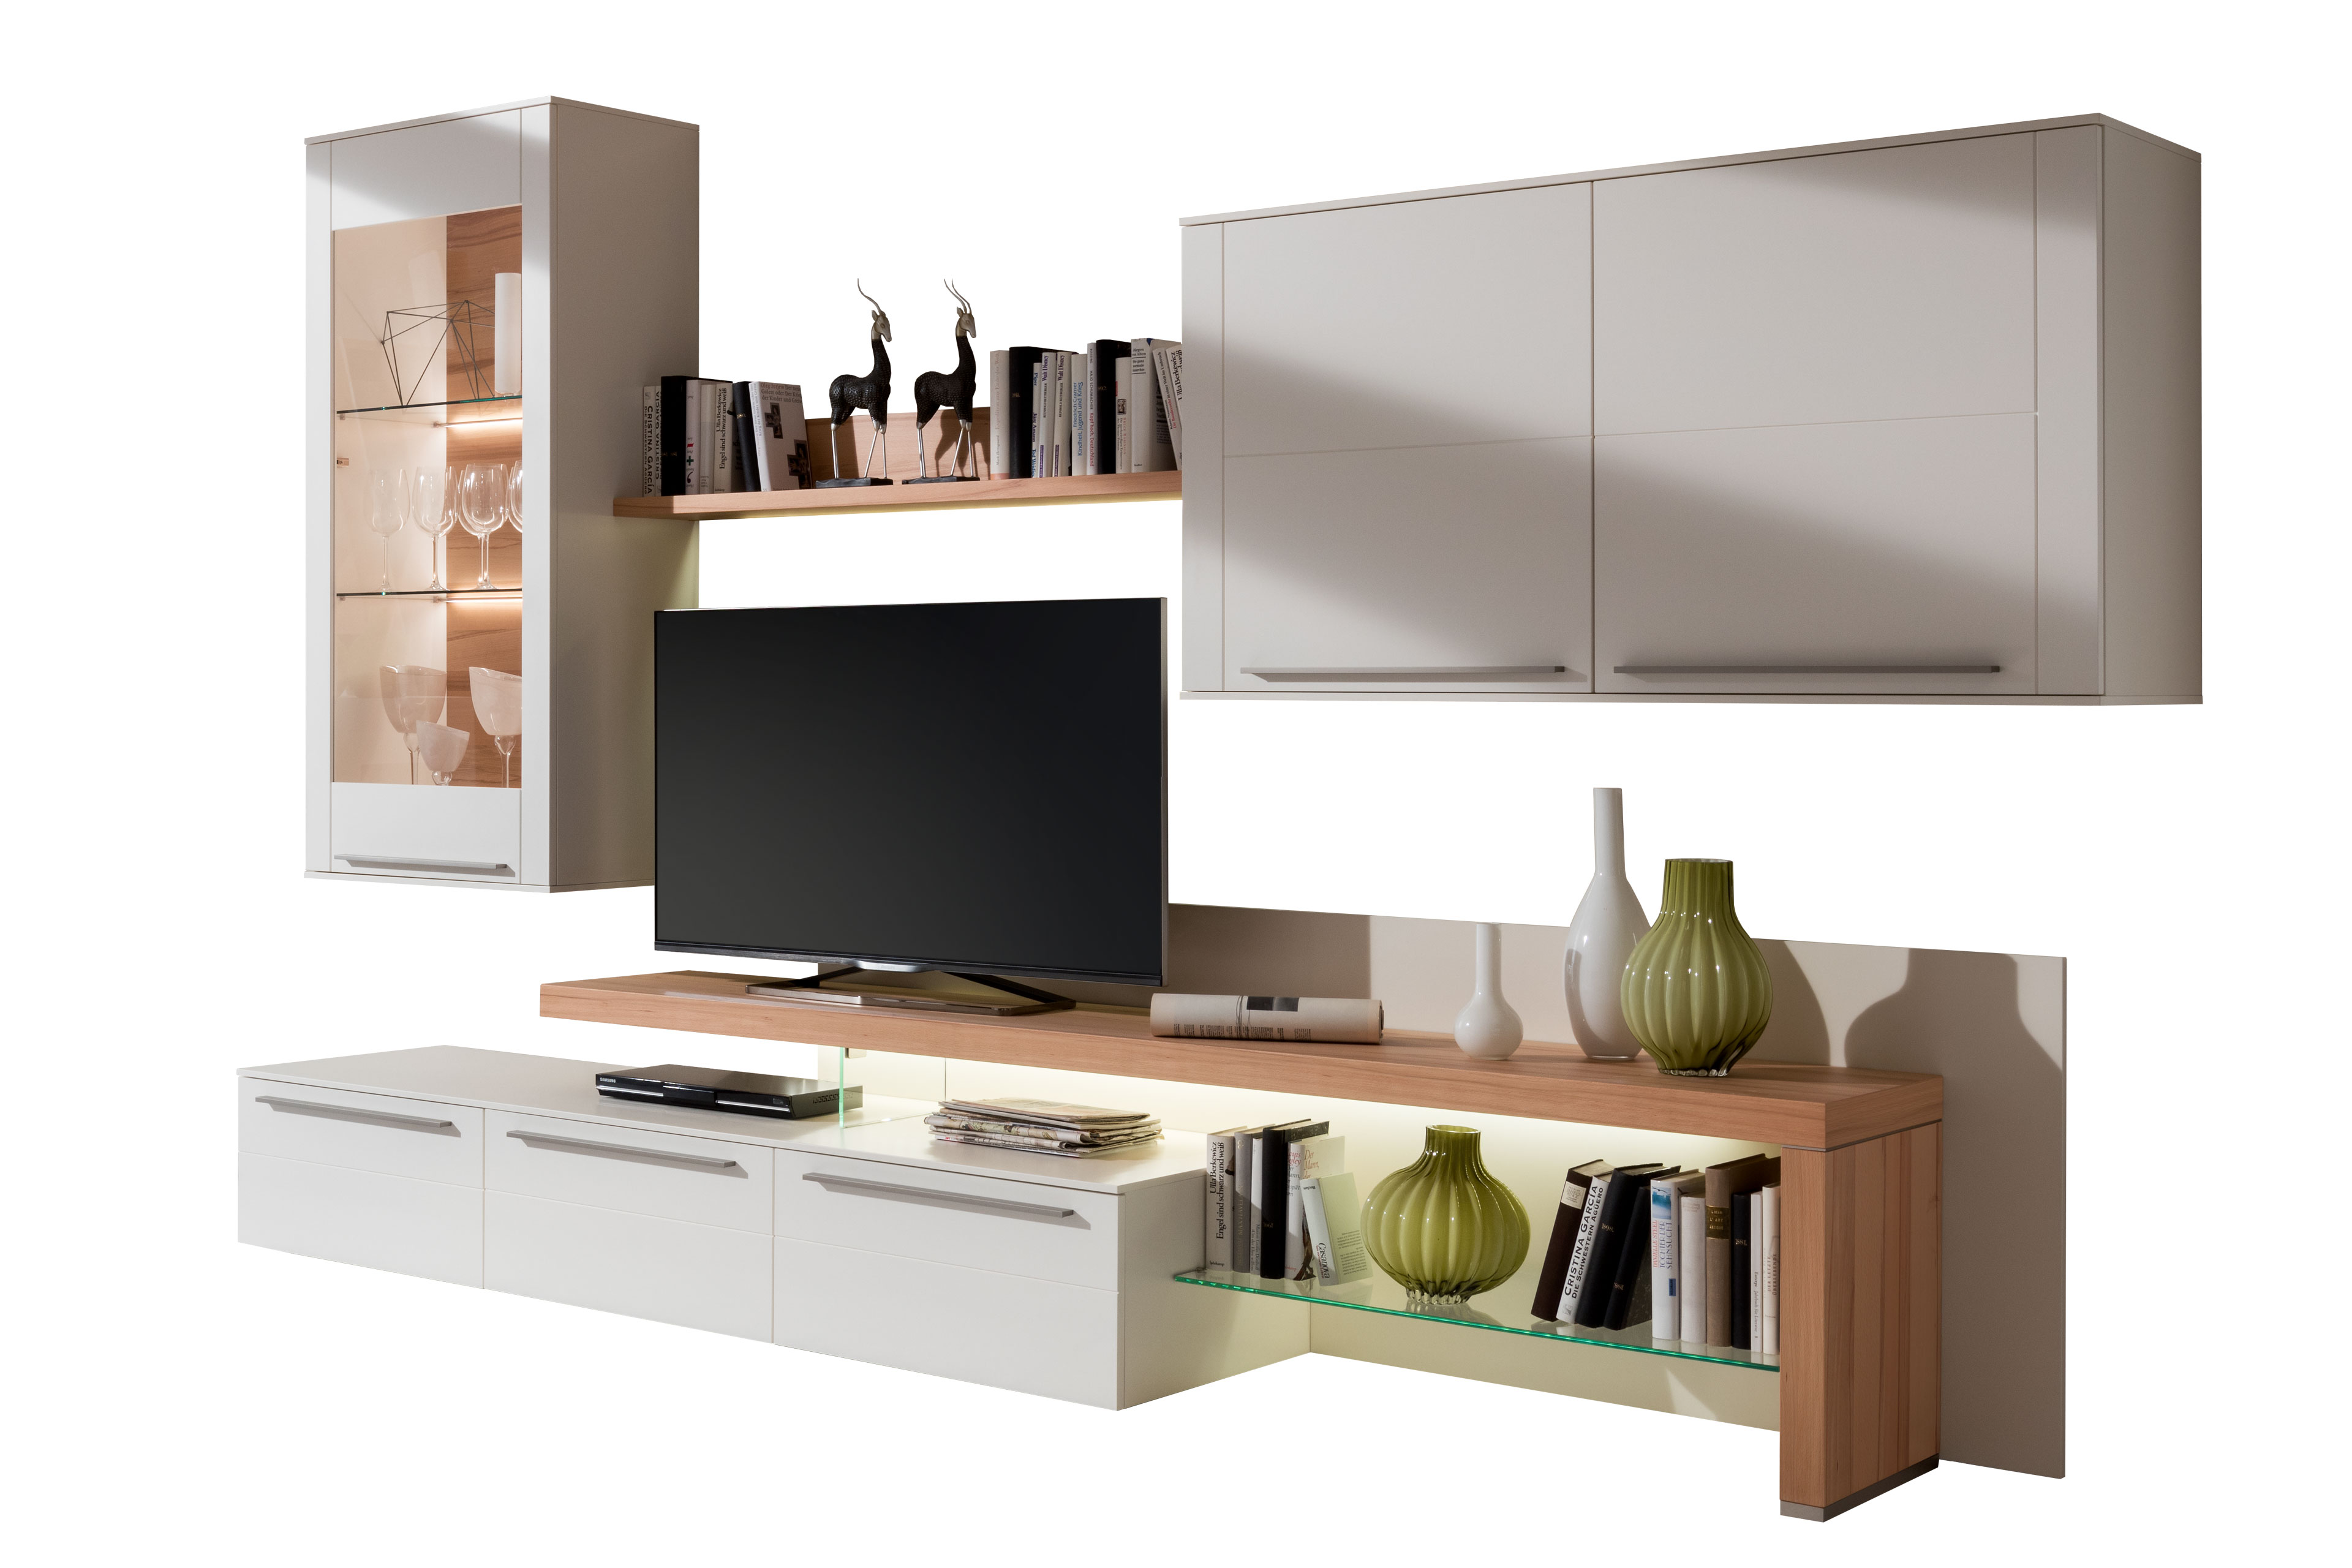 gwinner wohnwand bellano be19 wei kernbuche m bel letz ihr online shop. Black Bedroom Furniture Sets. Home Design Ideas